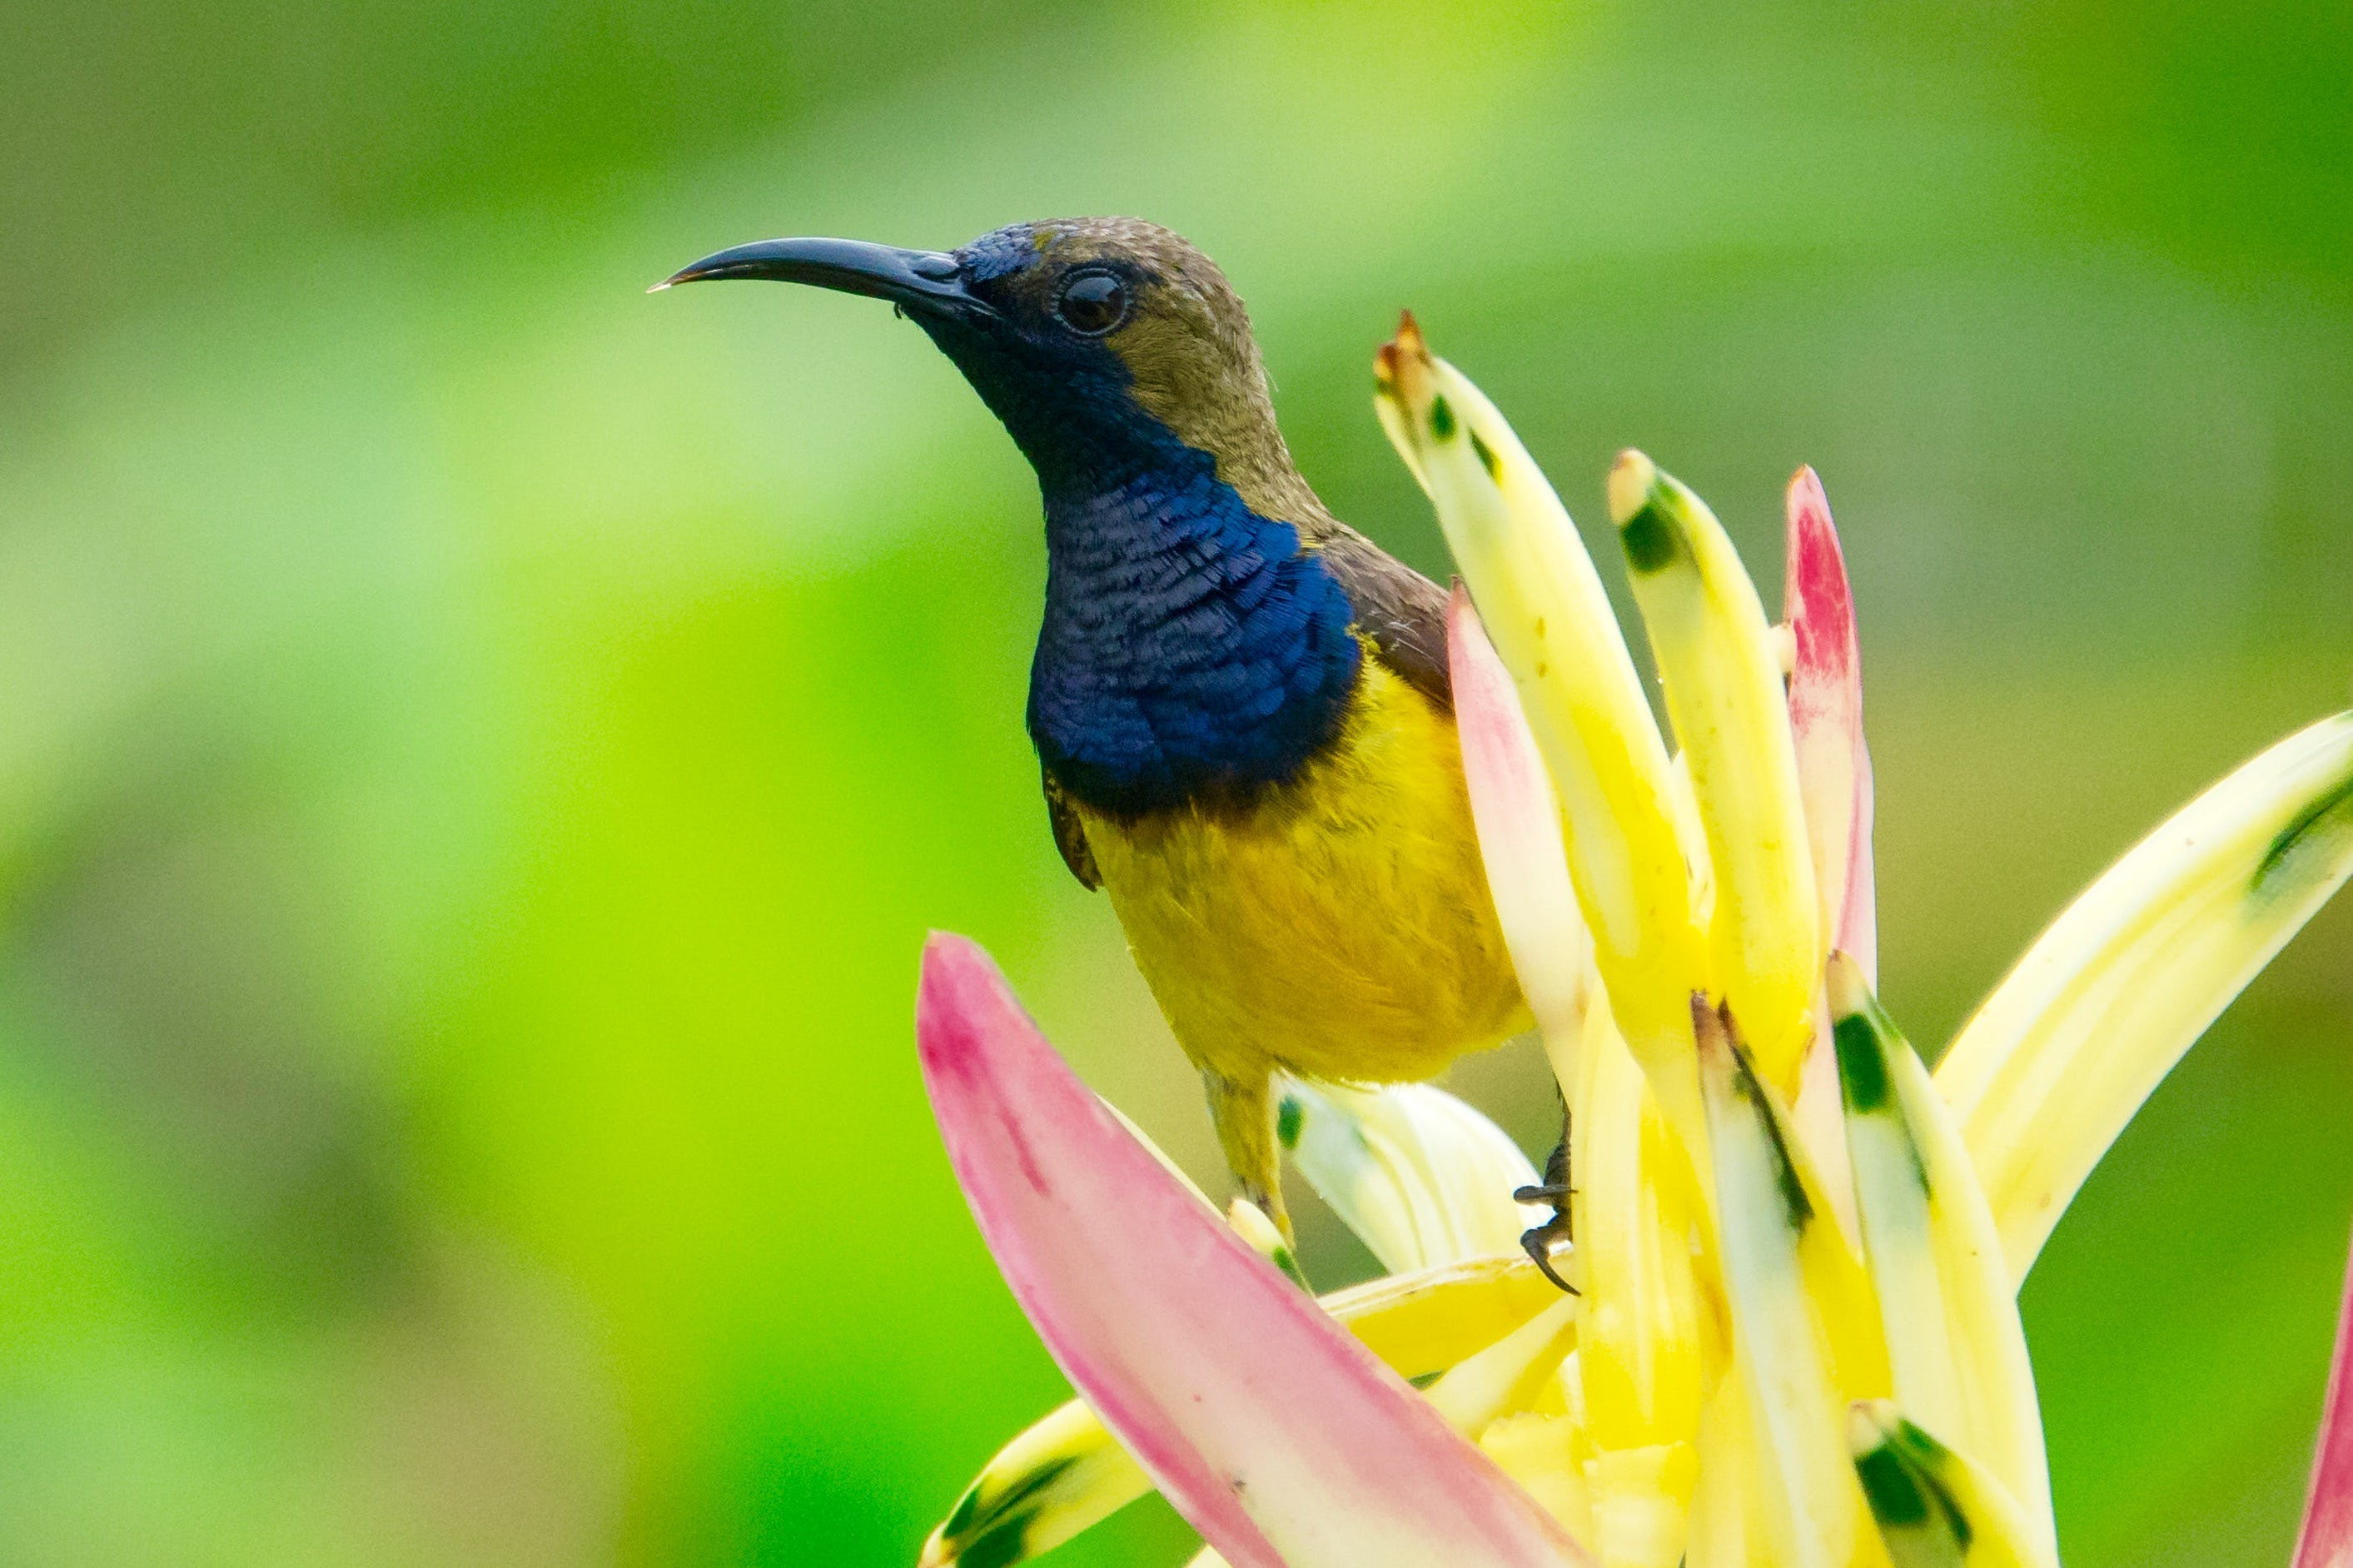 Yellow Blue and Brown Bird on the Top of Yellow Petaled Flower Photography